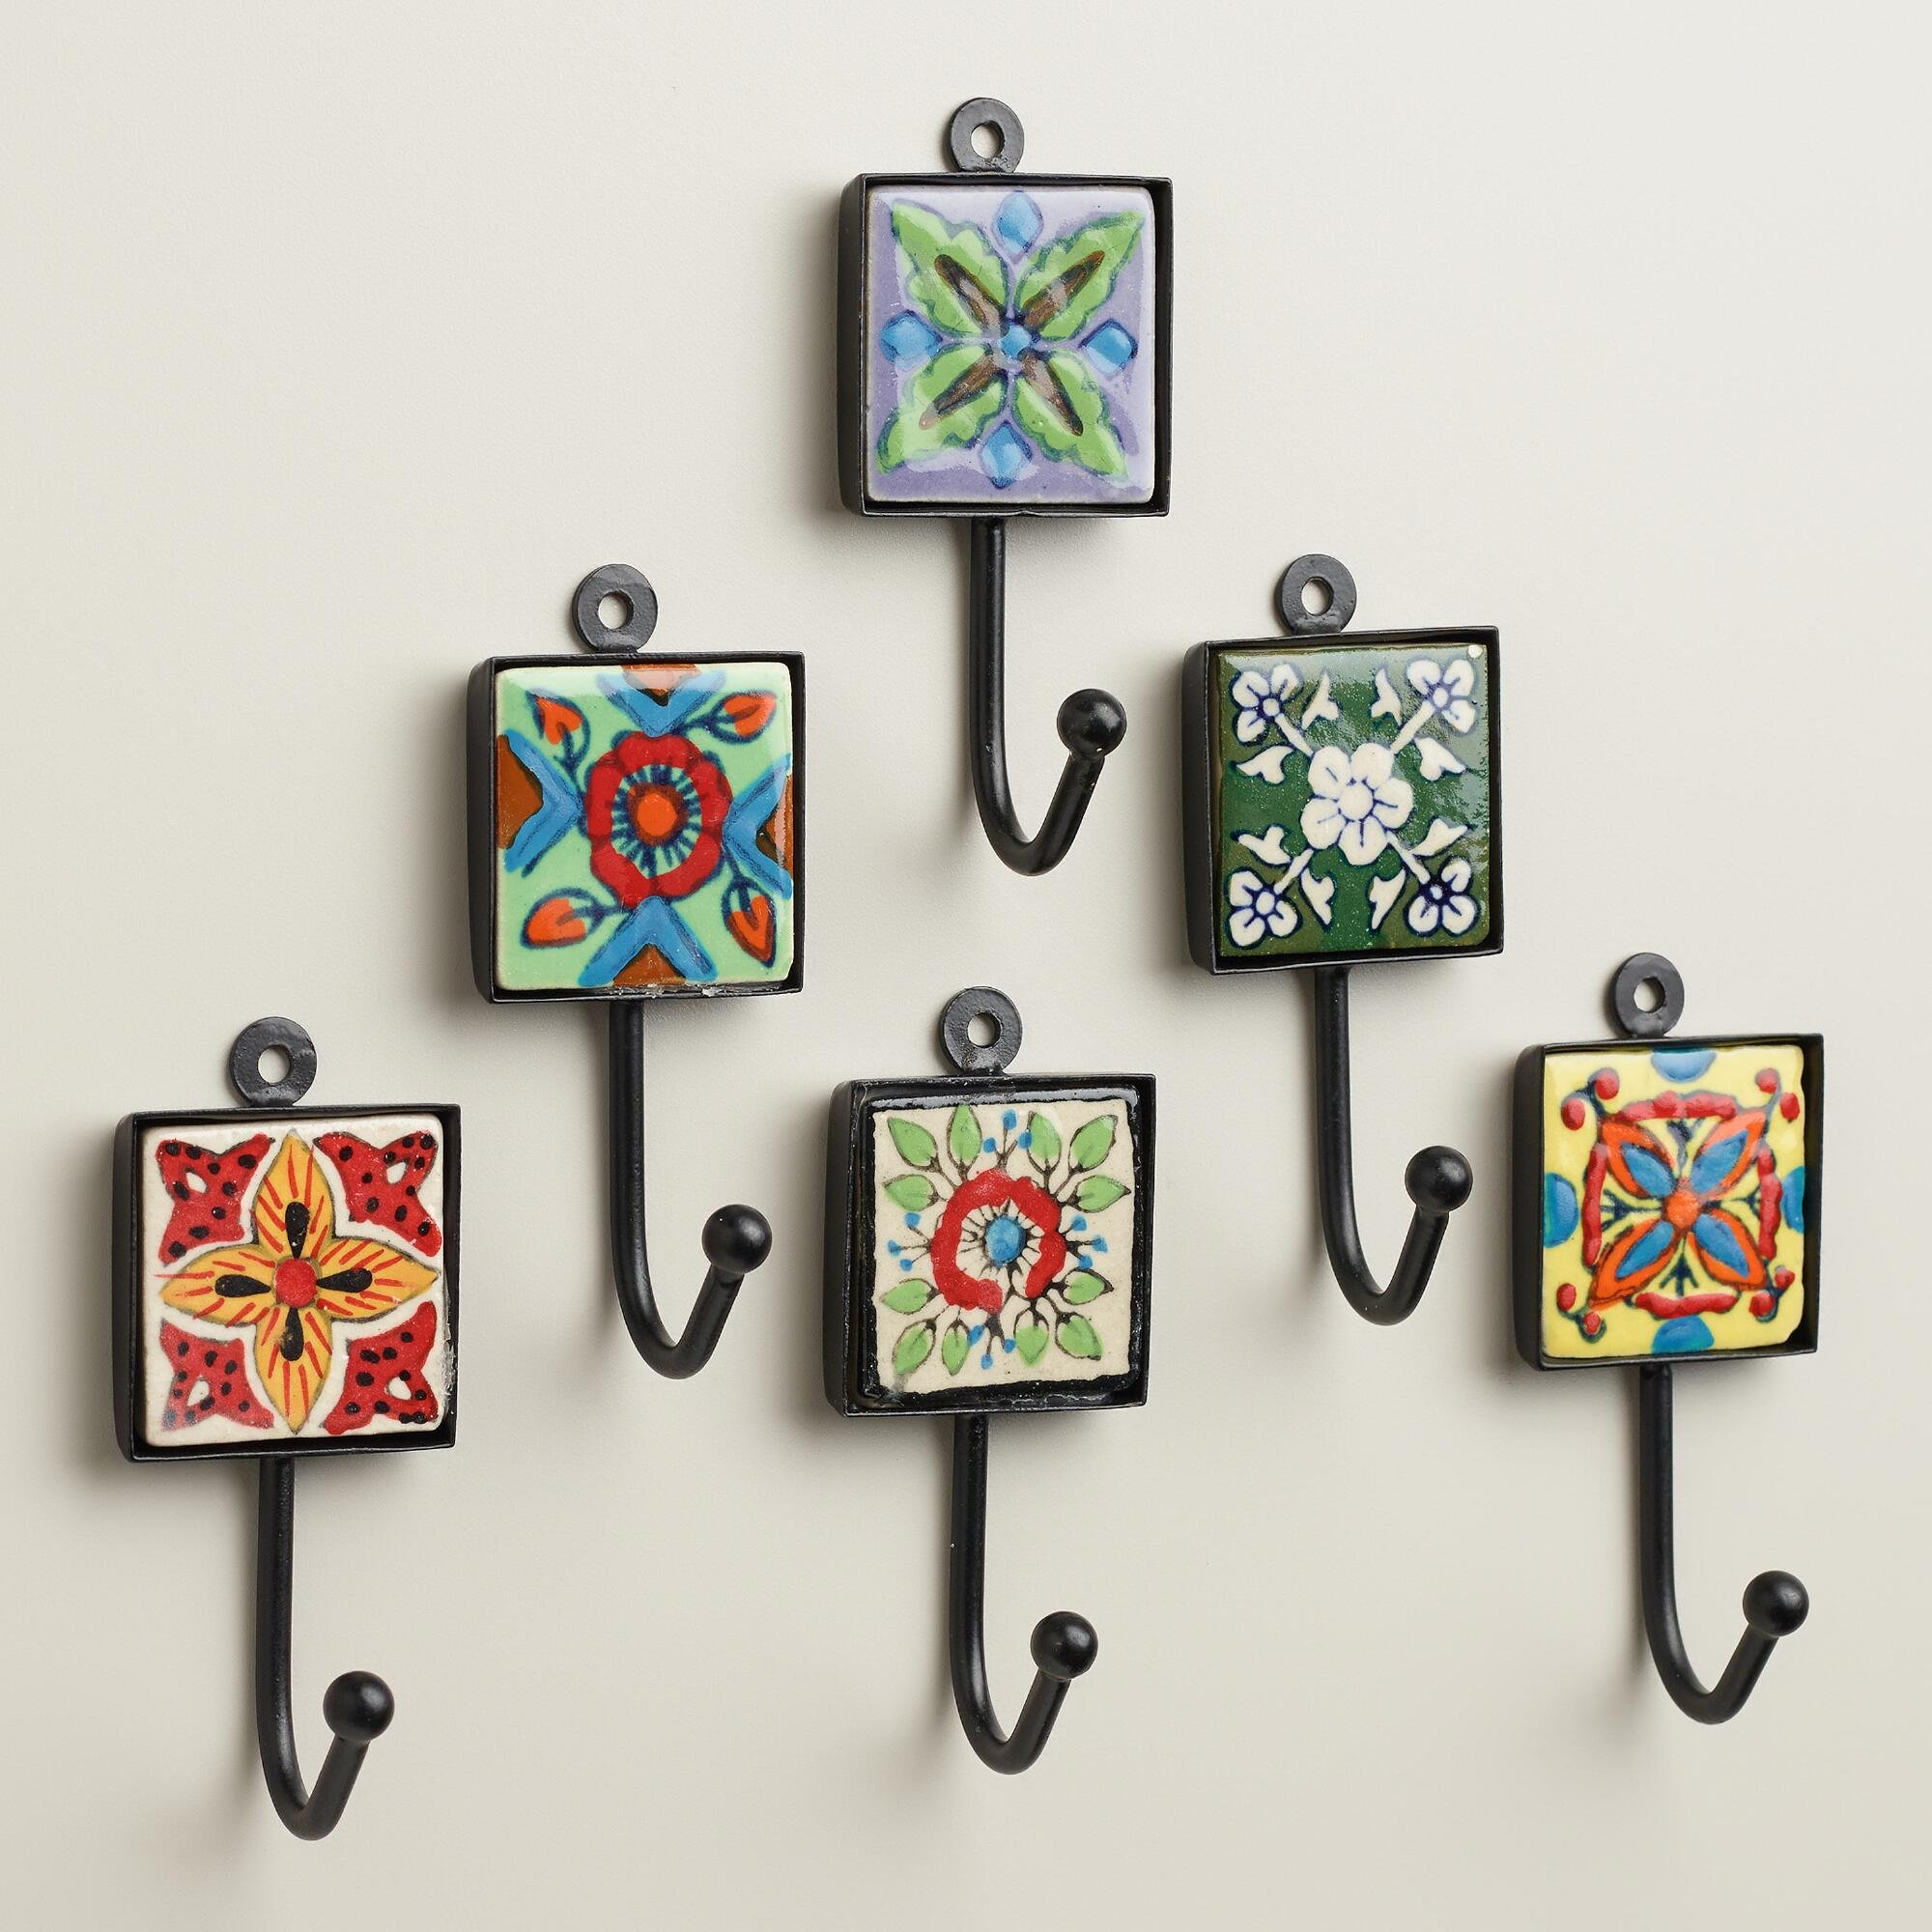 Painted Square Tile Hooks, Set of 6 3.5''W x 1.5''L x 1.25''H each